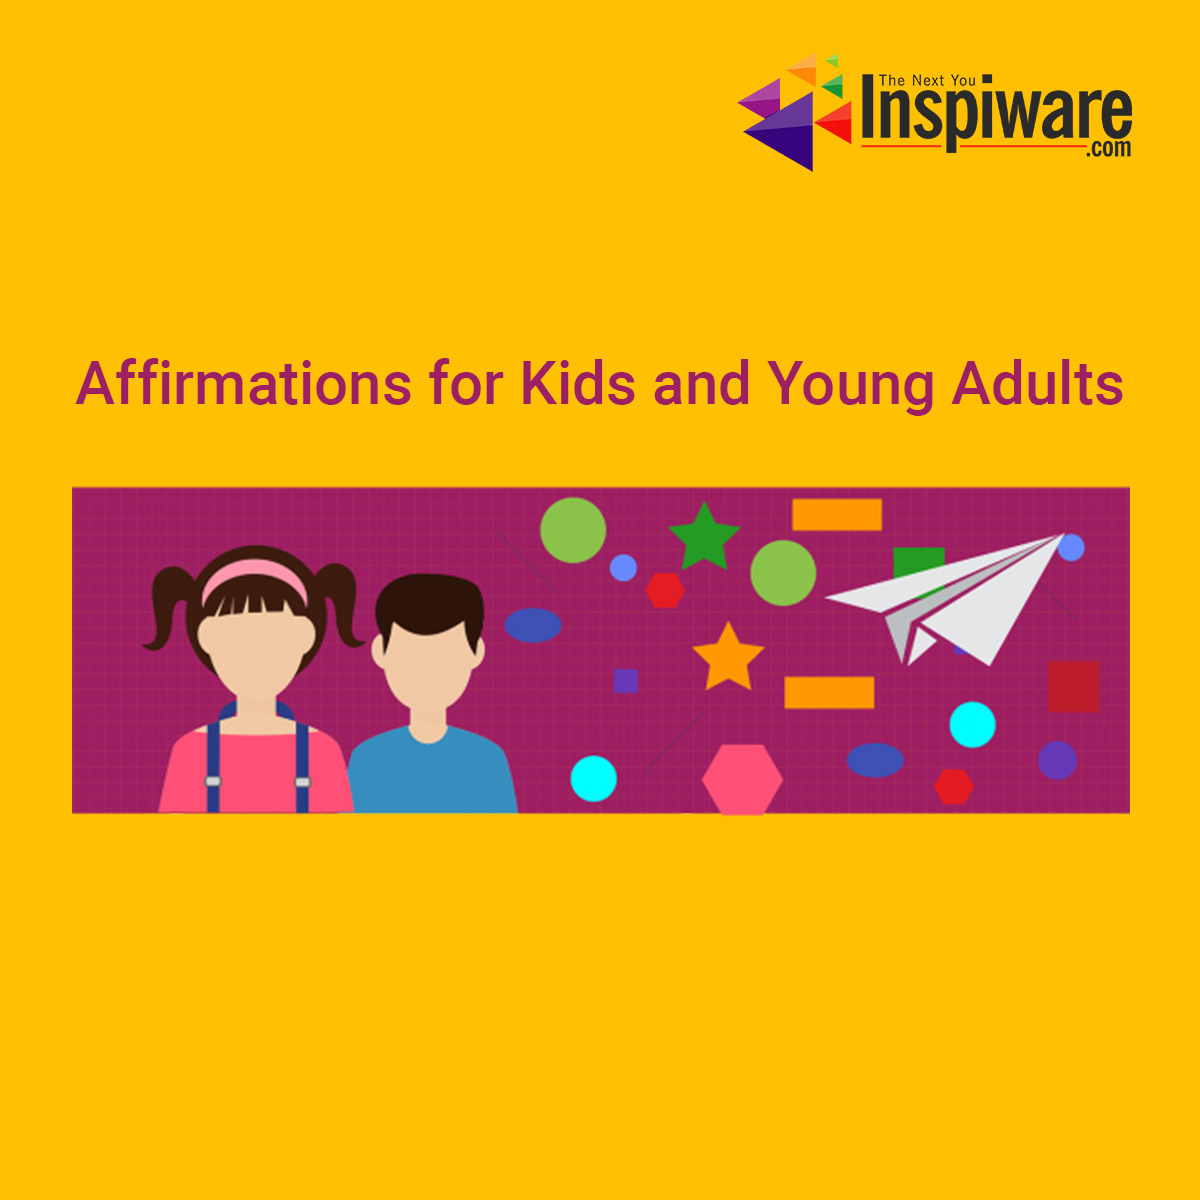 Affirmations for Kids and Young Adults